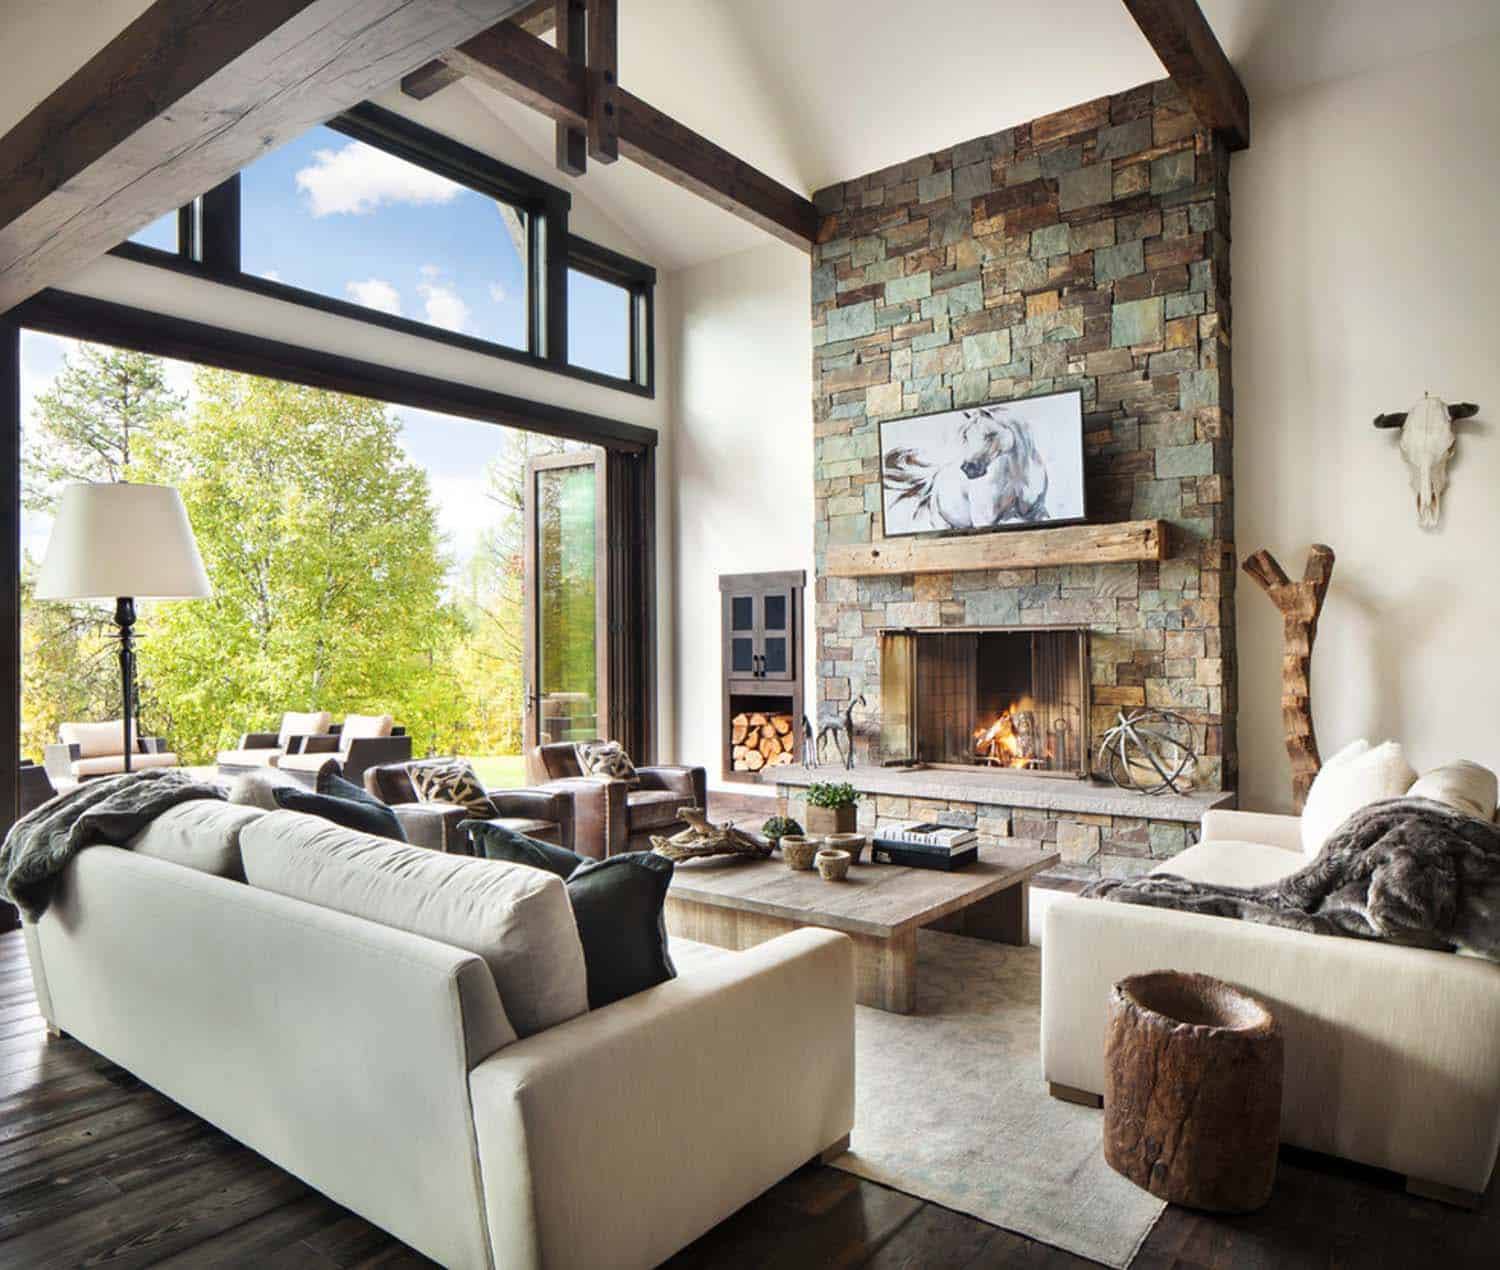 Rusticmodern dwelling nestled in the northern Rocky Mountains